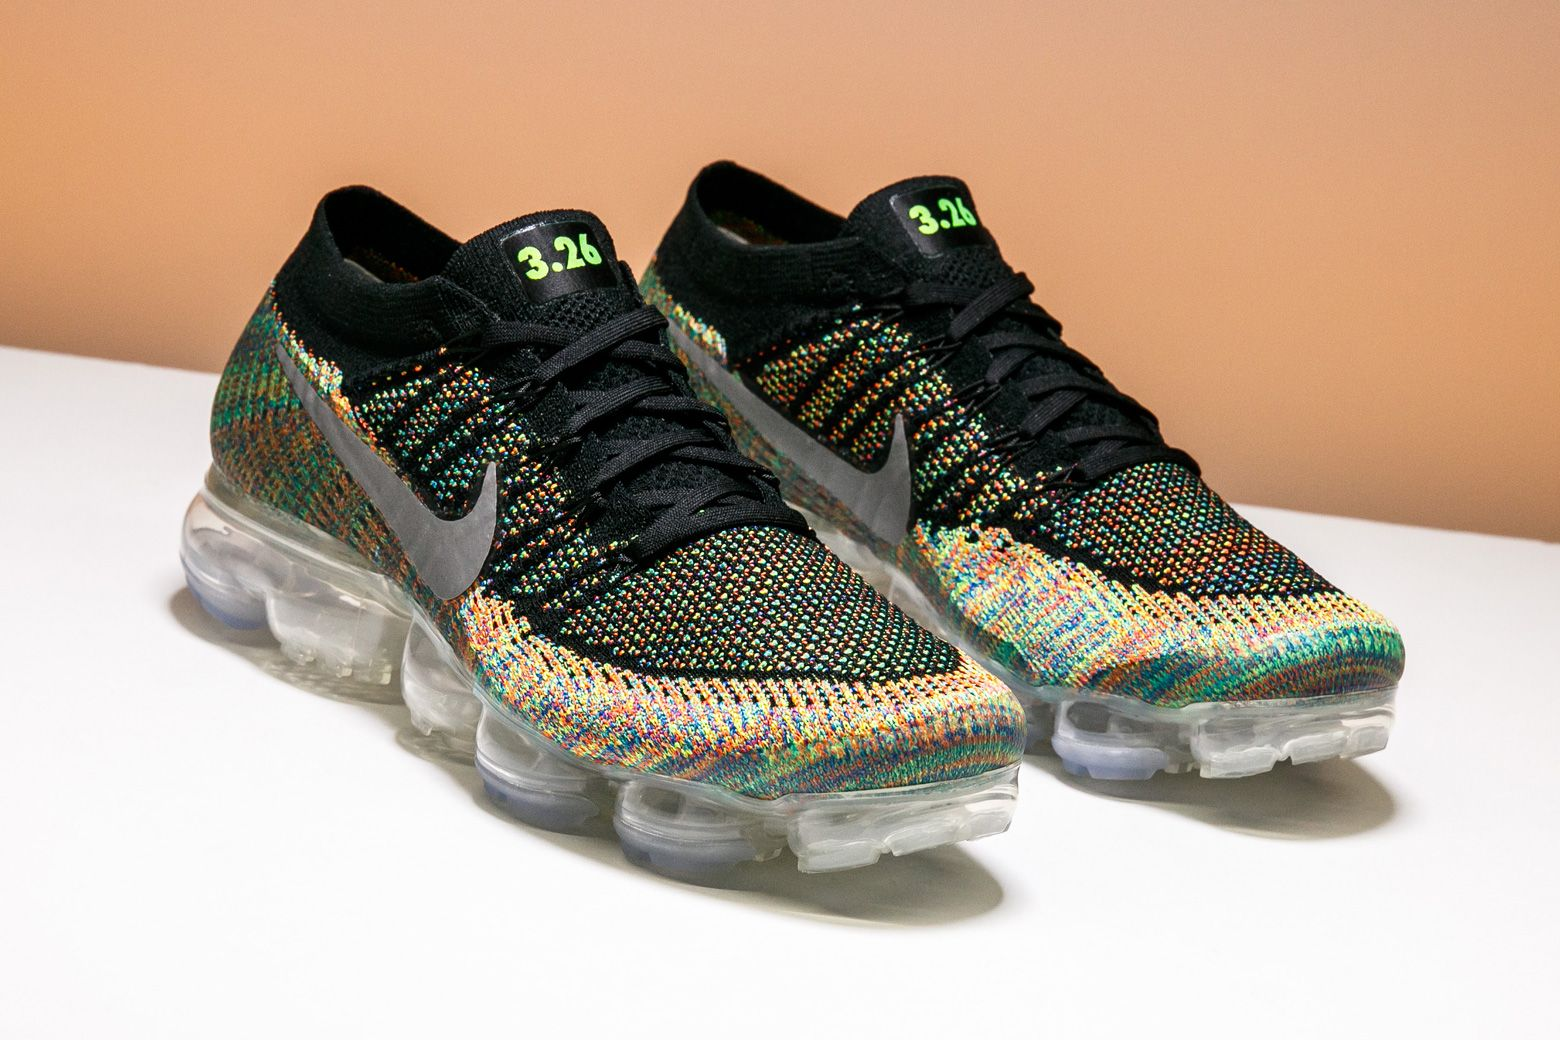 aab2973174560 Air Max Day 2017 brought us this multicolor pair of the Nike Air VaporMax  iD.